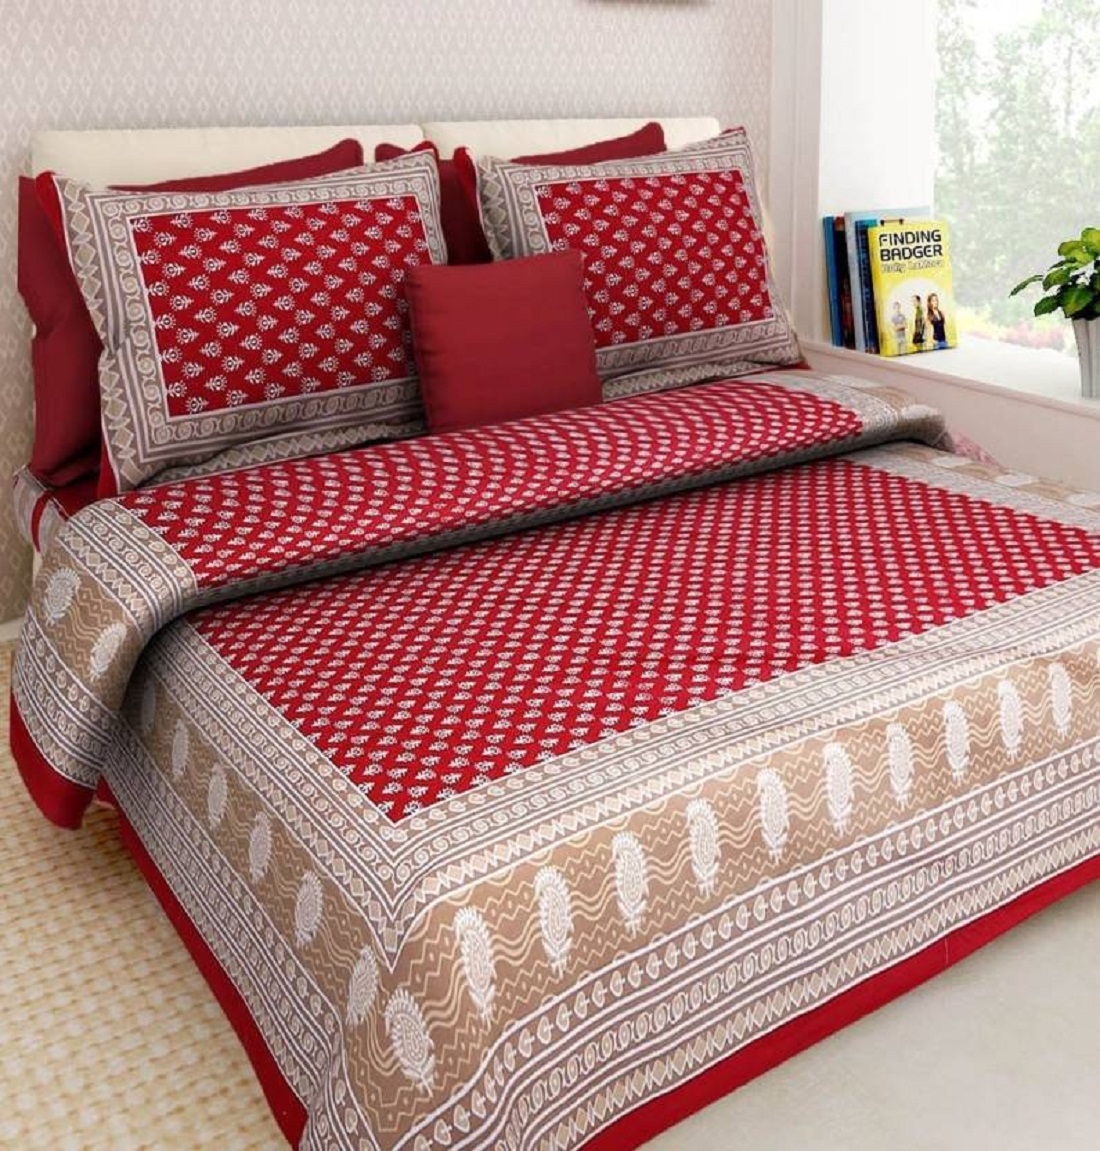 Kuber Industries™ 144 TC Cotton Double Bedsheet with 2 Pillow Covers - Red (BS21)